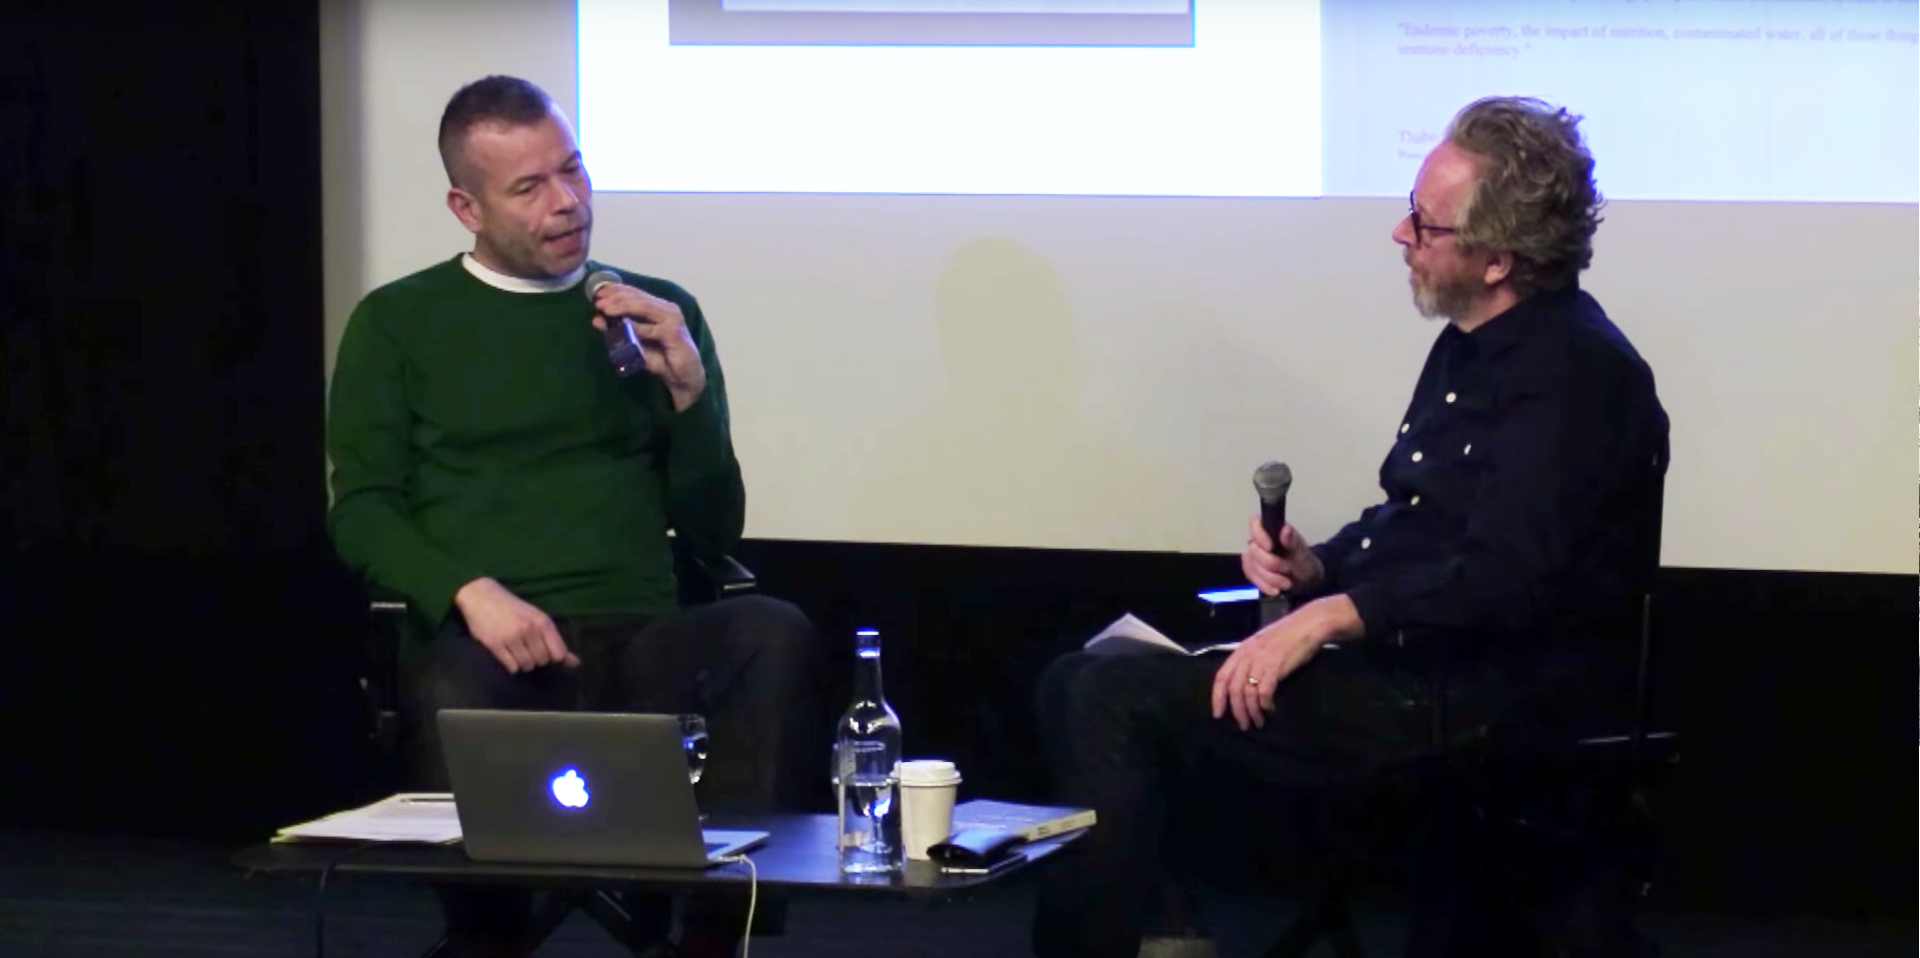 Wolfgang Tillmans in conversation with the writer and critic Sean O'Hagan  at London's ICA ICA